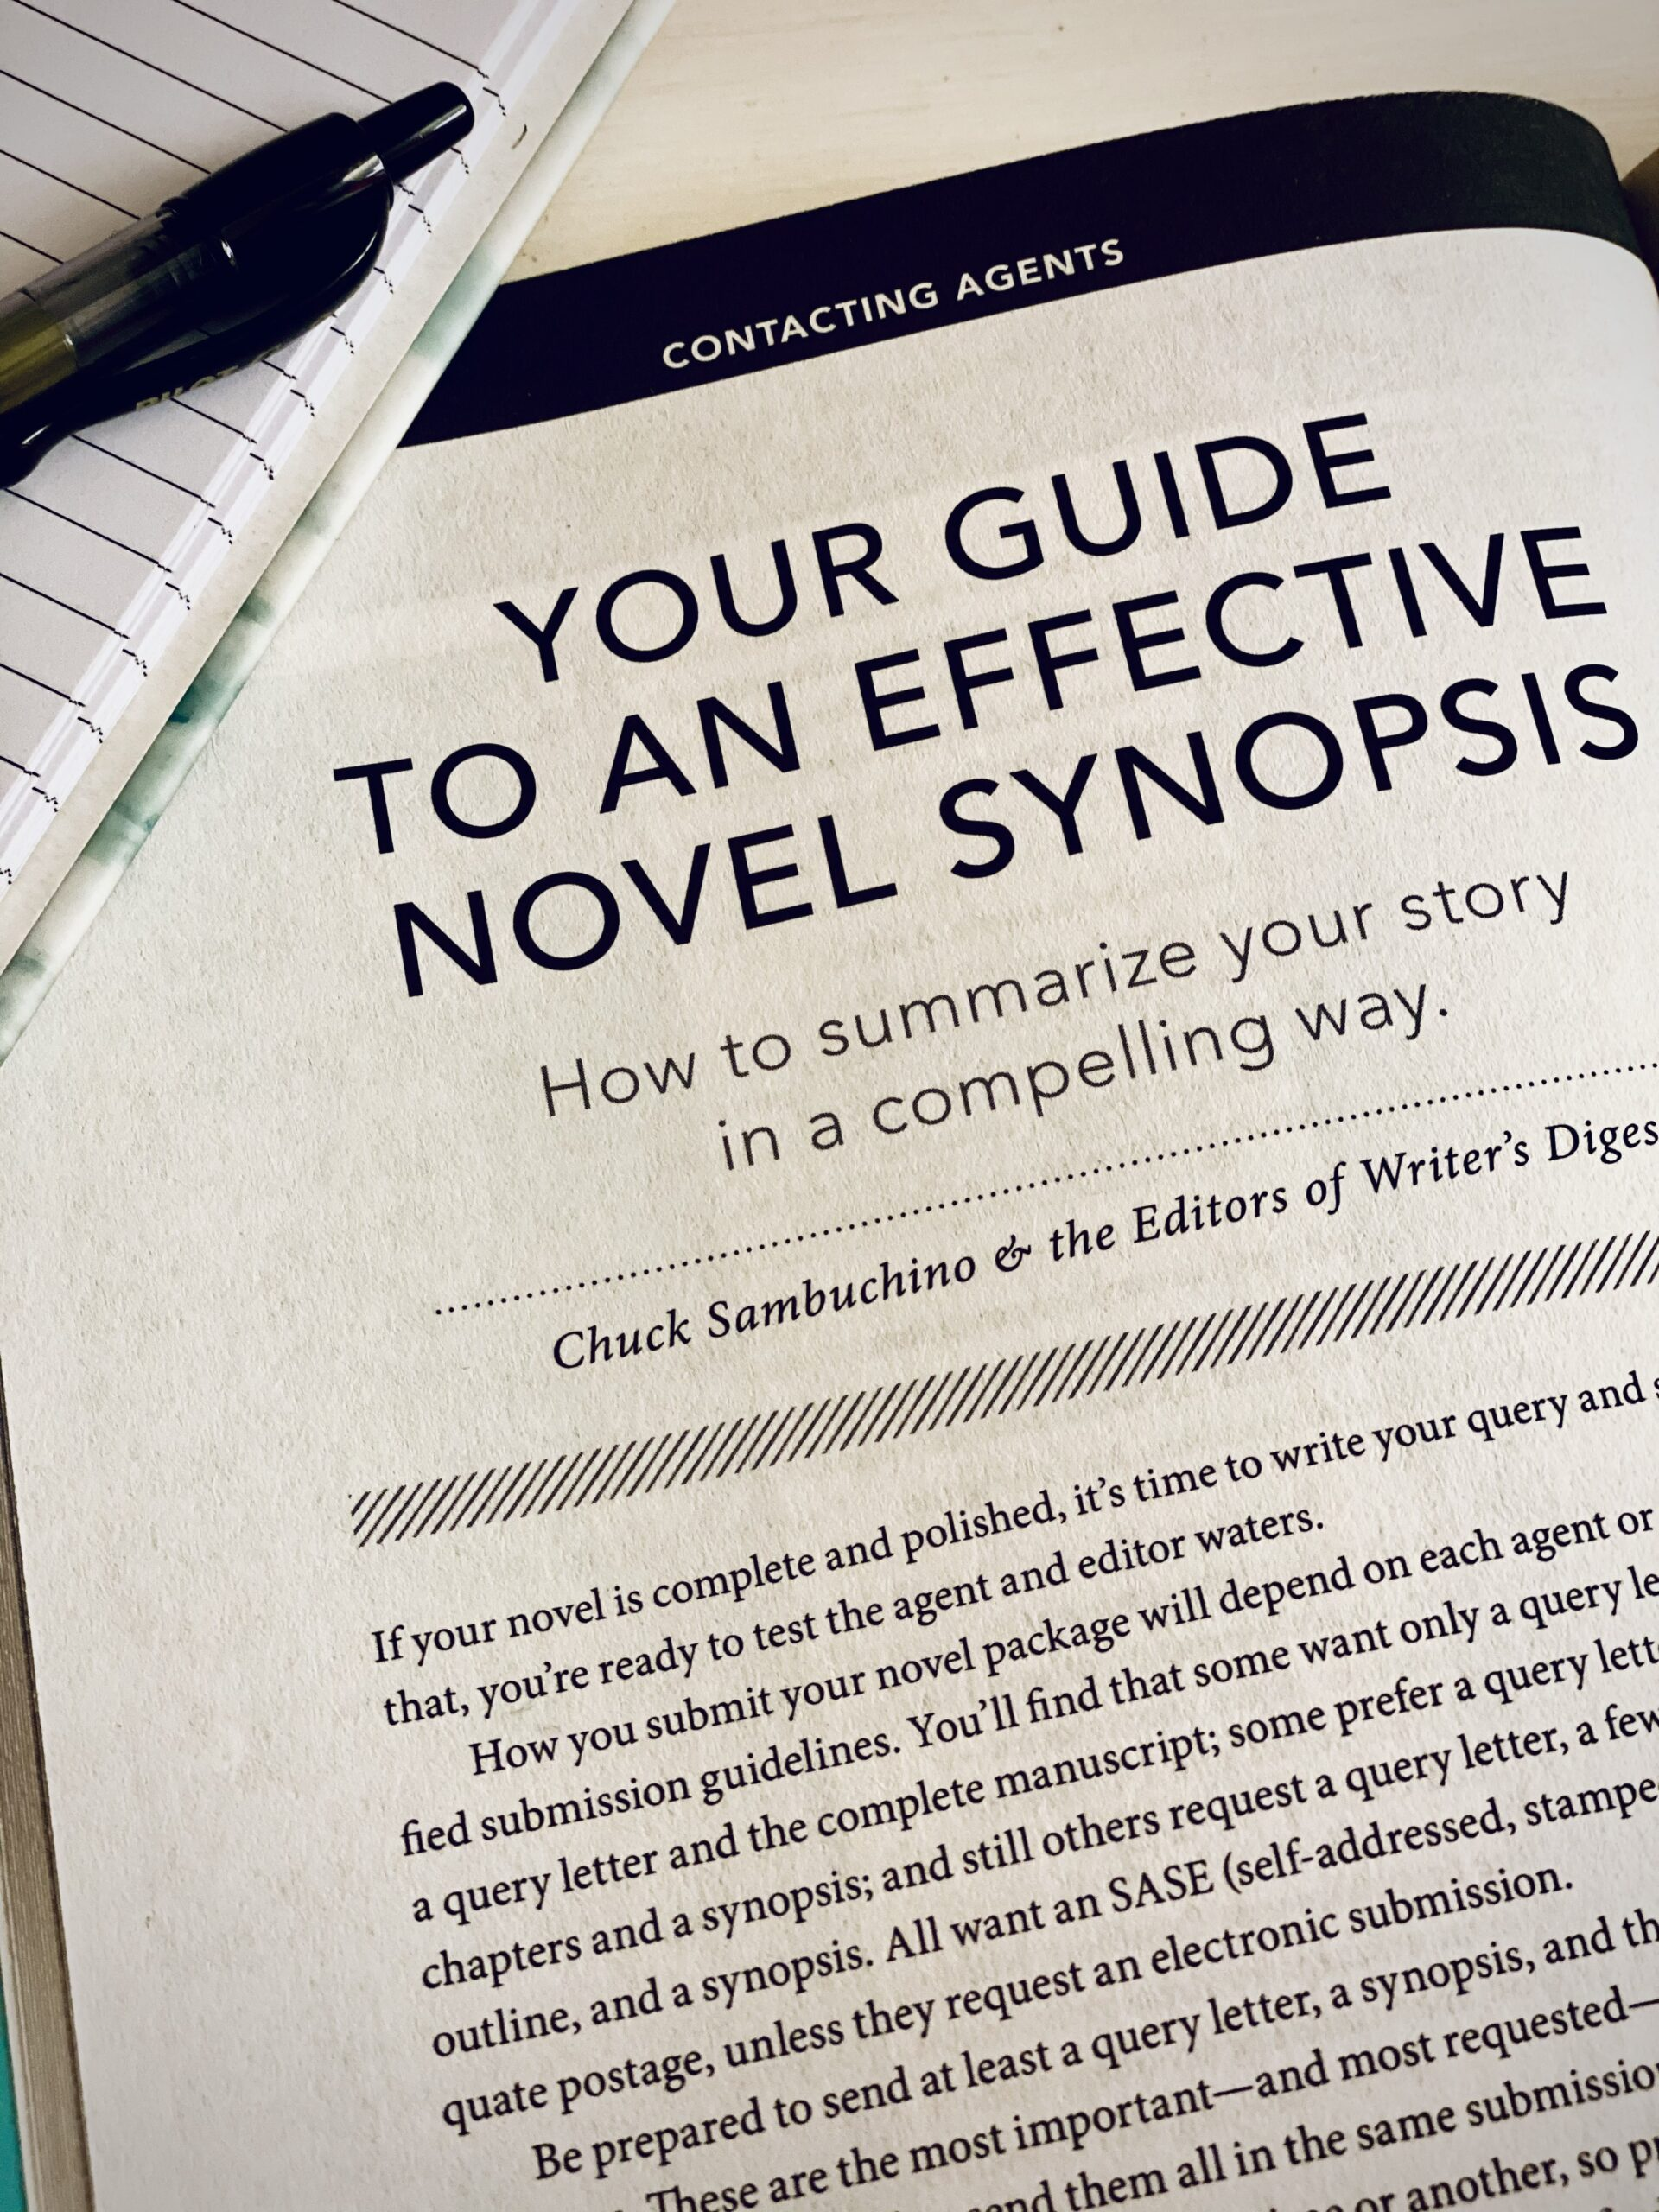 synopsis writing, how to write a novel synopsis, novel synopsis, writer's digest, writing, author, books, publishing, writing tips